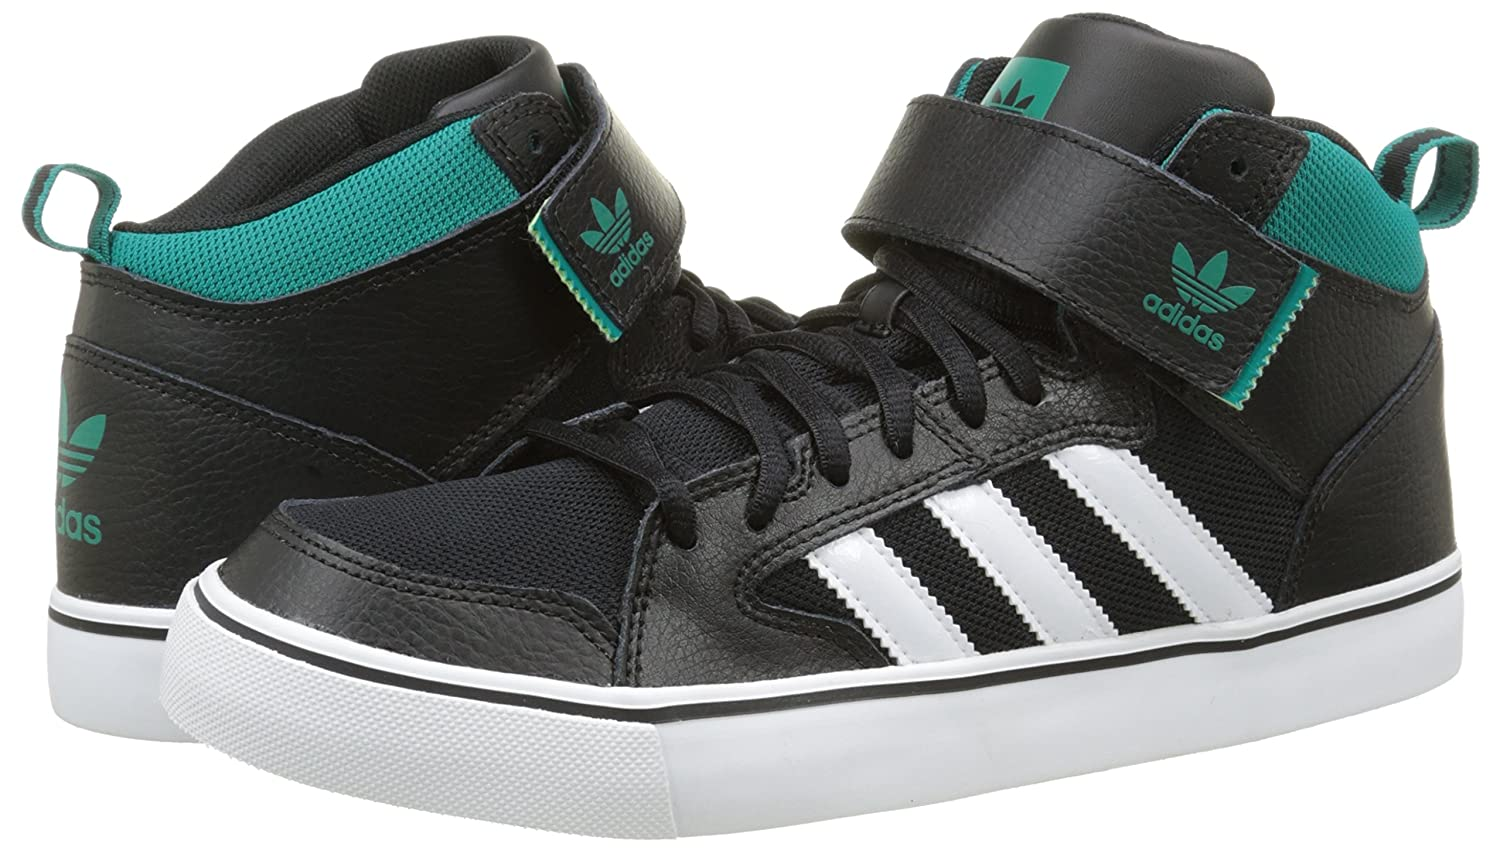 3abad428dfc6 Adidas Varial Mid F37482 Mens shoes Black-Green-White 13 D(M) US   Amazon.in  Shoes   Handbags